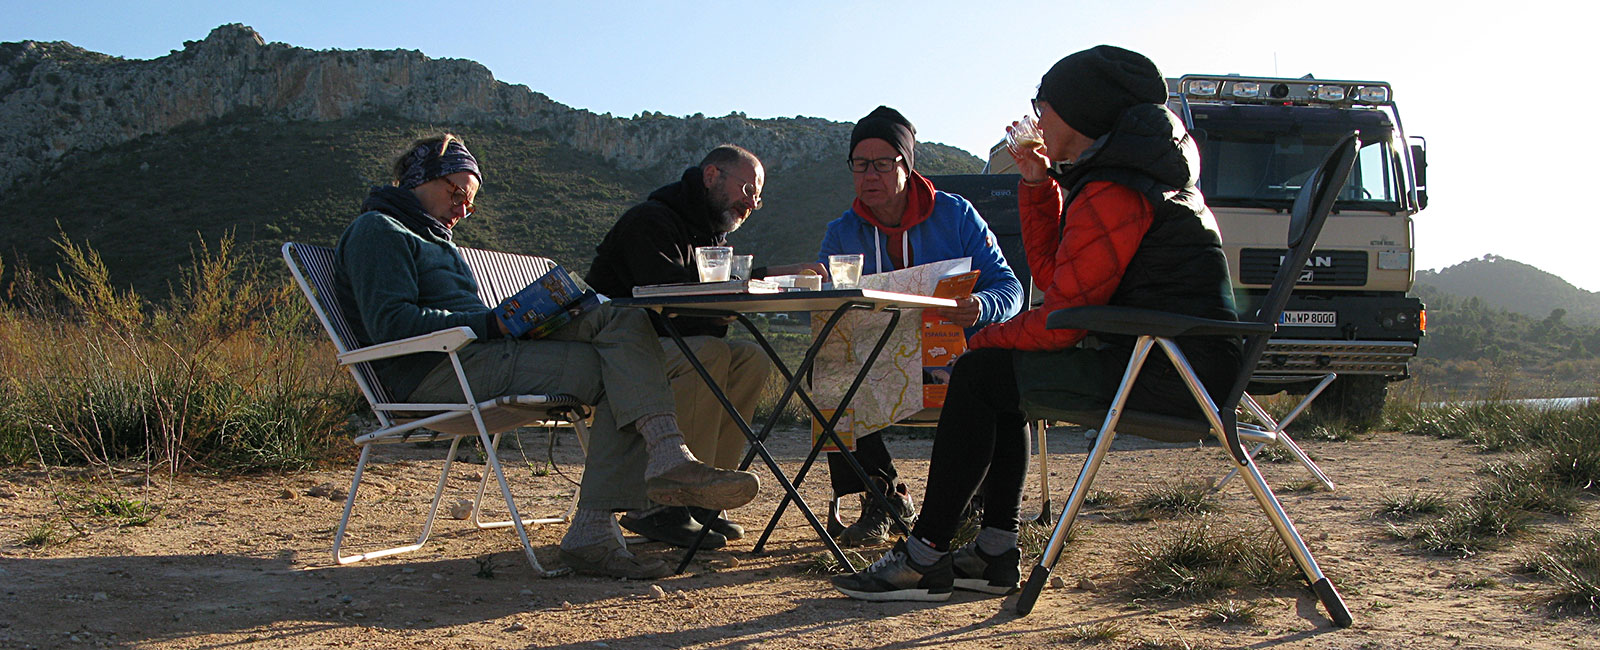 Breakfast in a group of four in our free nature camp at Embalse del Guadalhorce